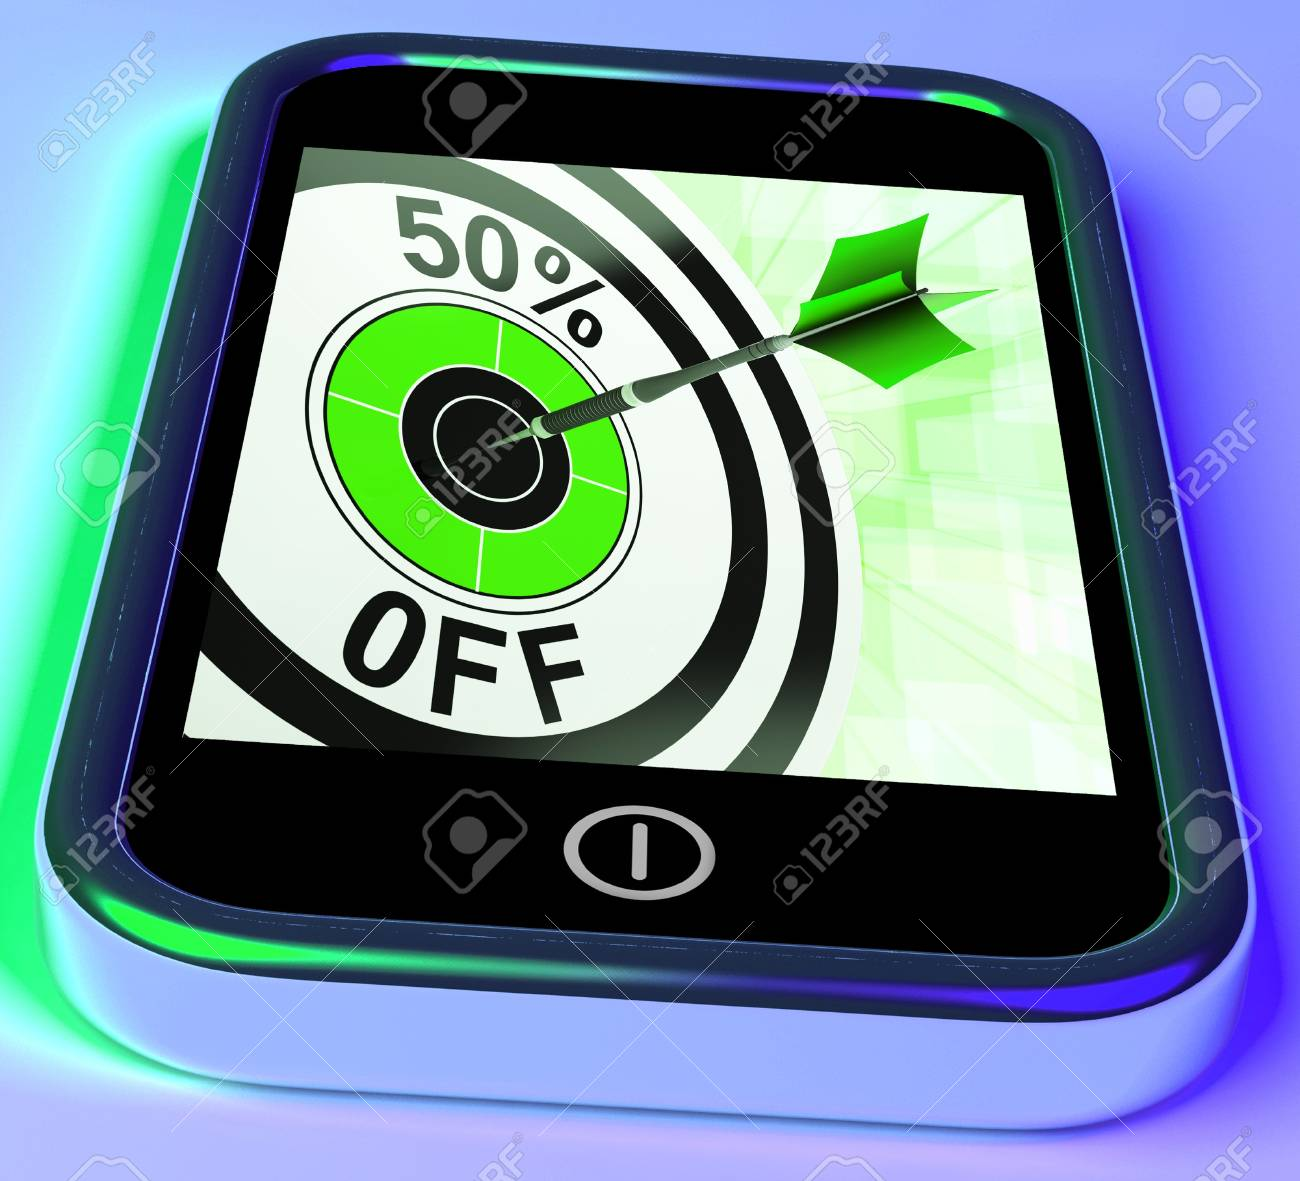 50 Percent Off On Smartphone Showing Great Offers And Savings Stock Photo - 18407775